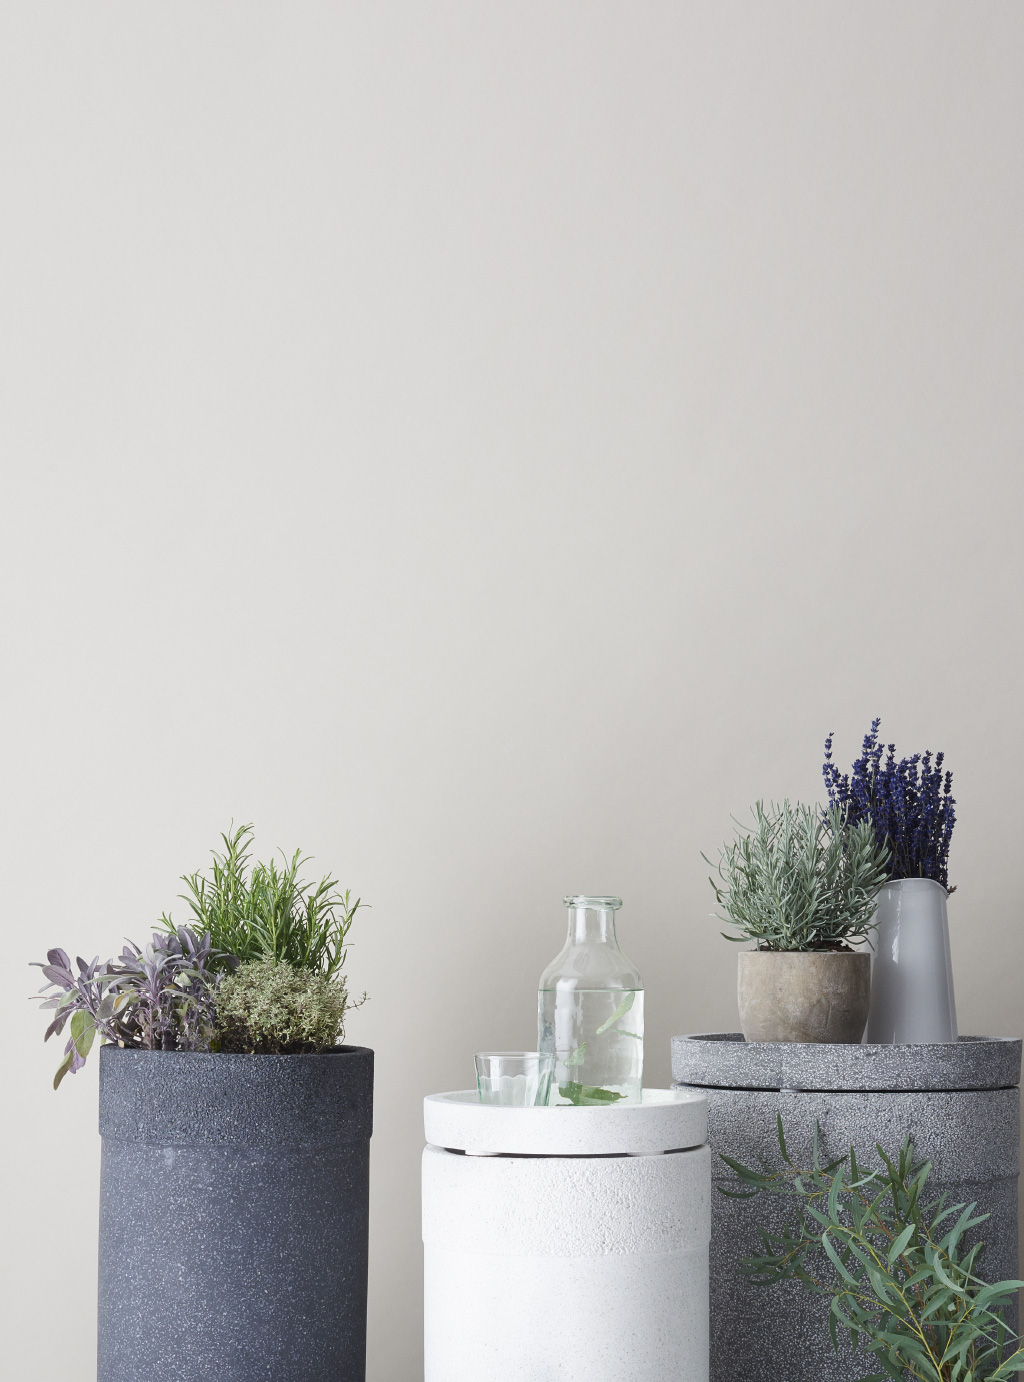 three concrete plinths, two grey with plants on top and one white with a glass and a bottle with water